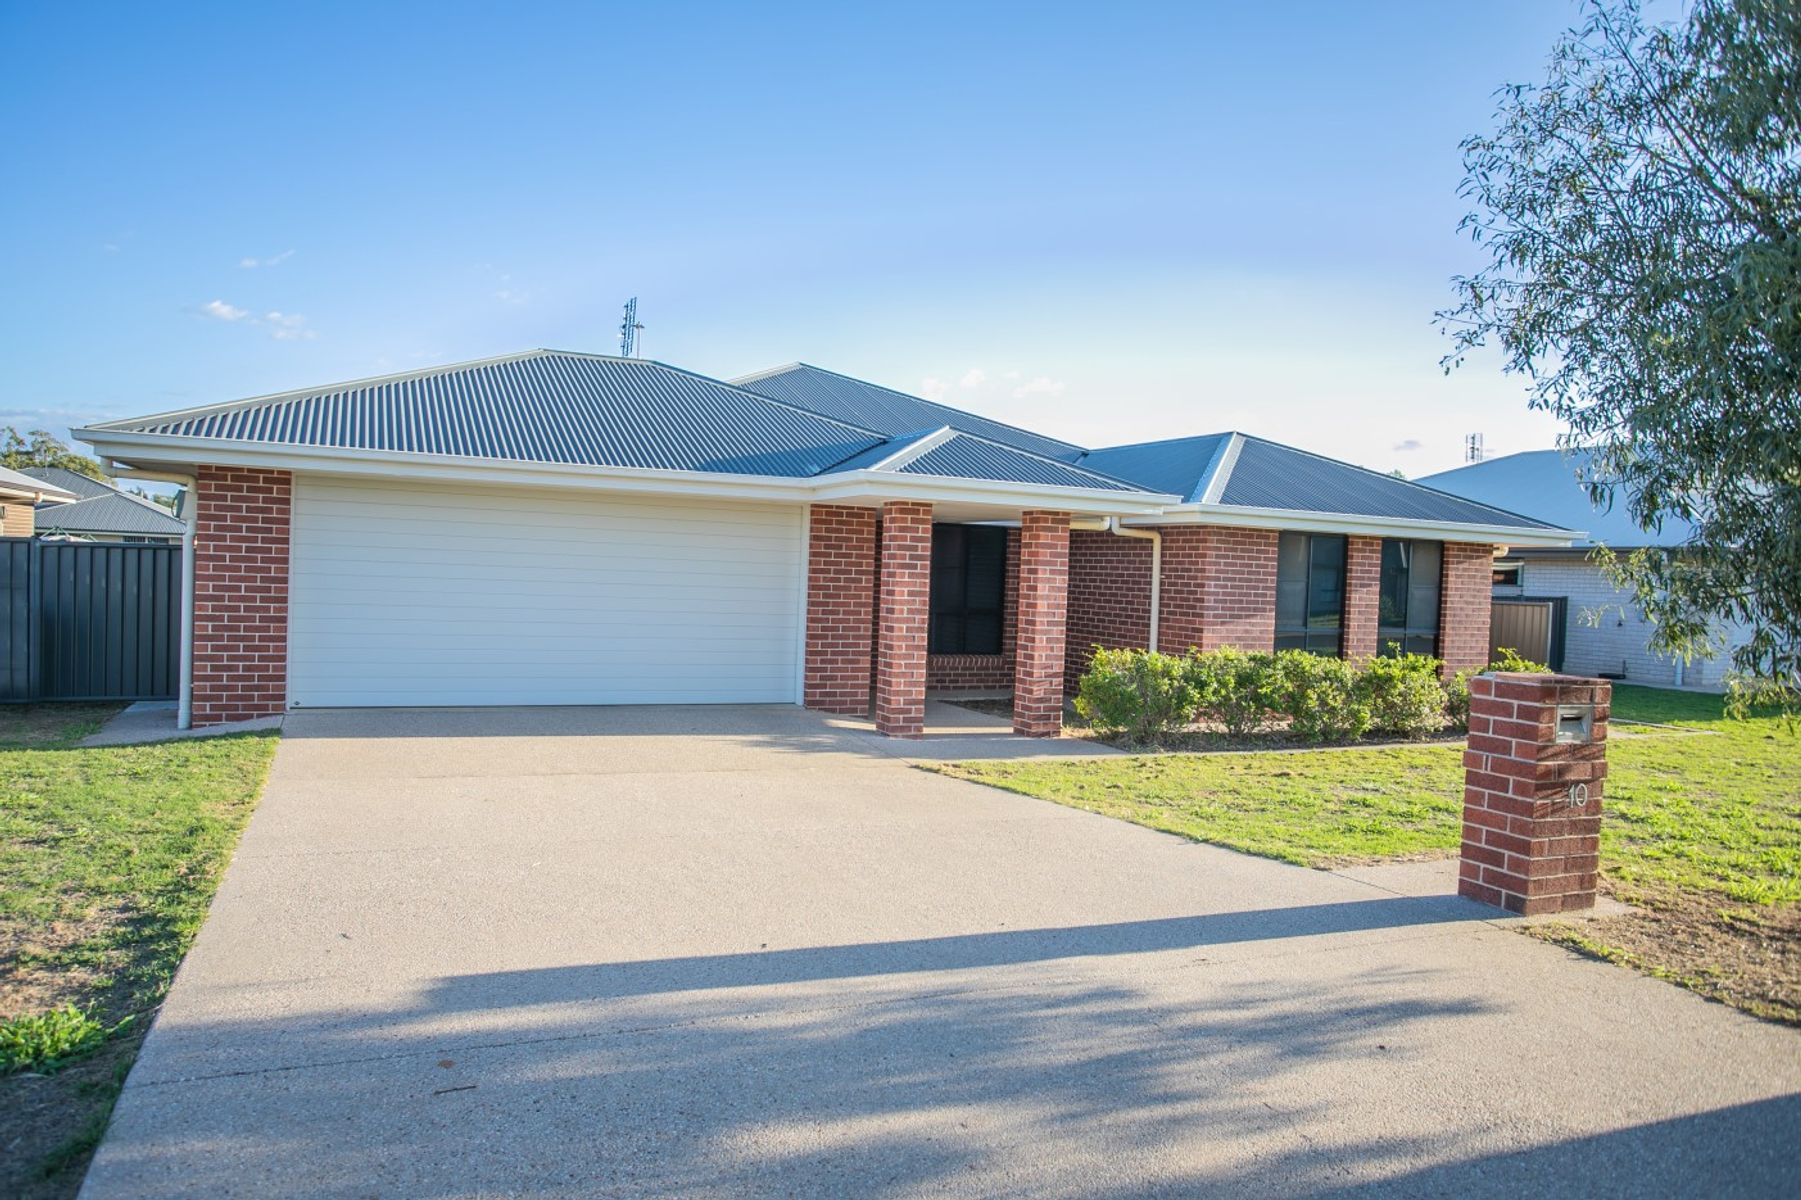 10 Gower Street, Chinchilla, QLD 4413